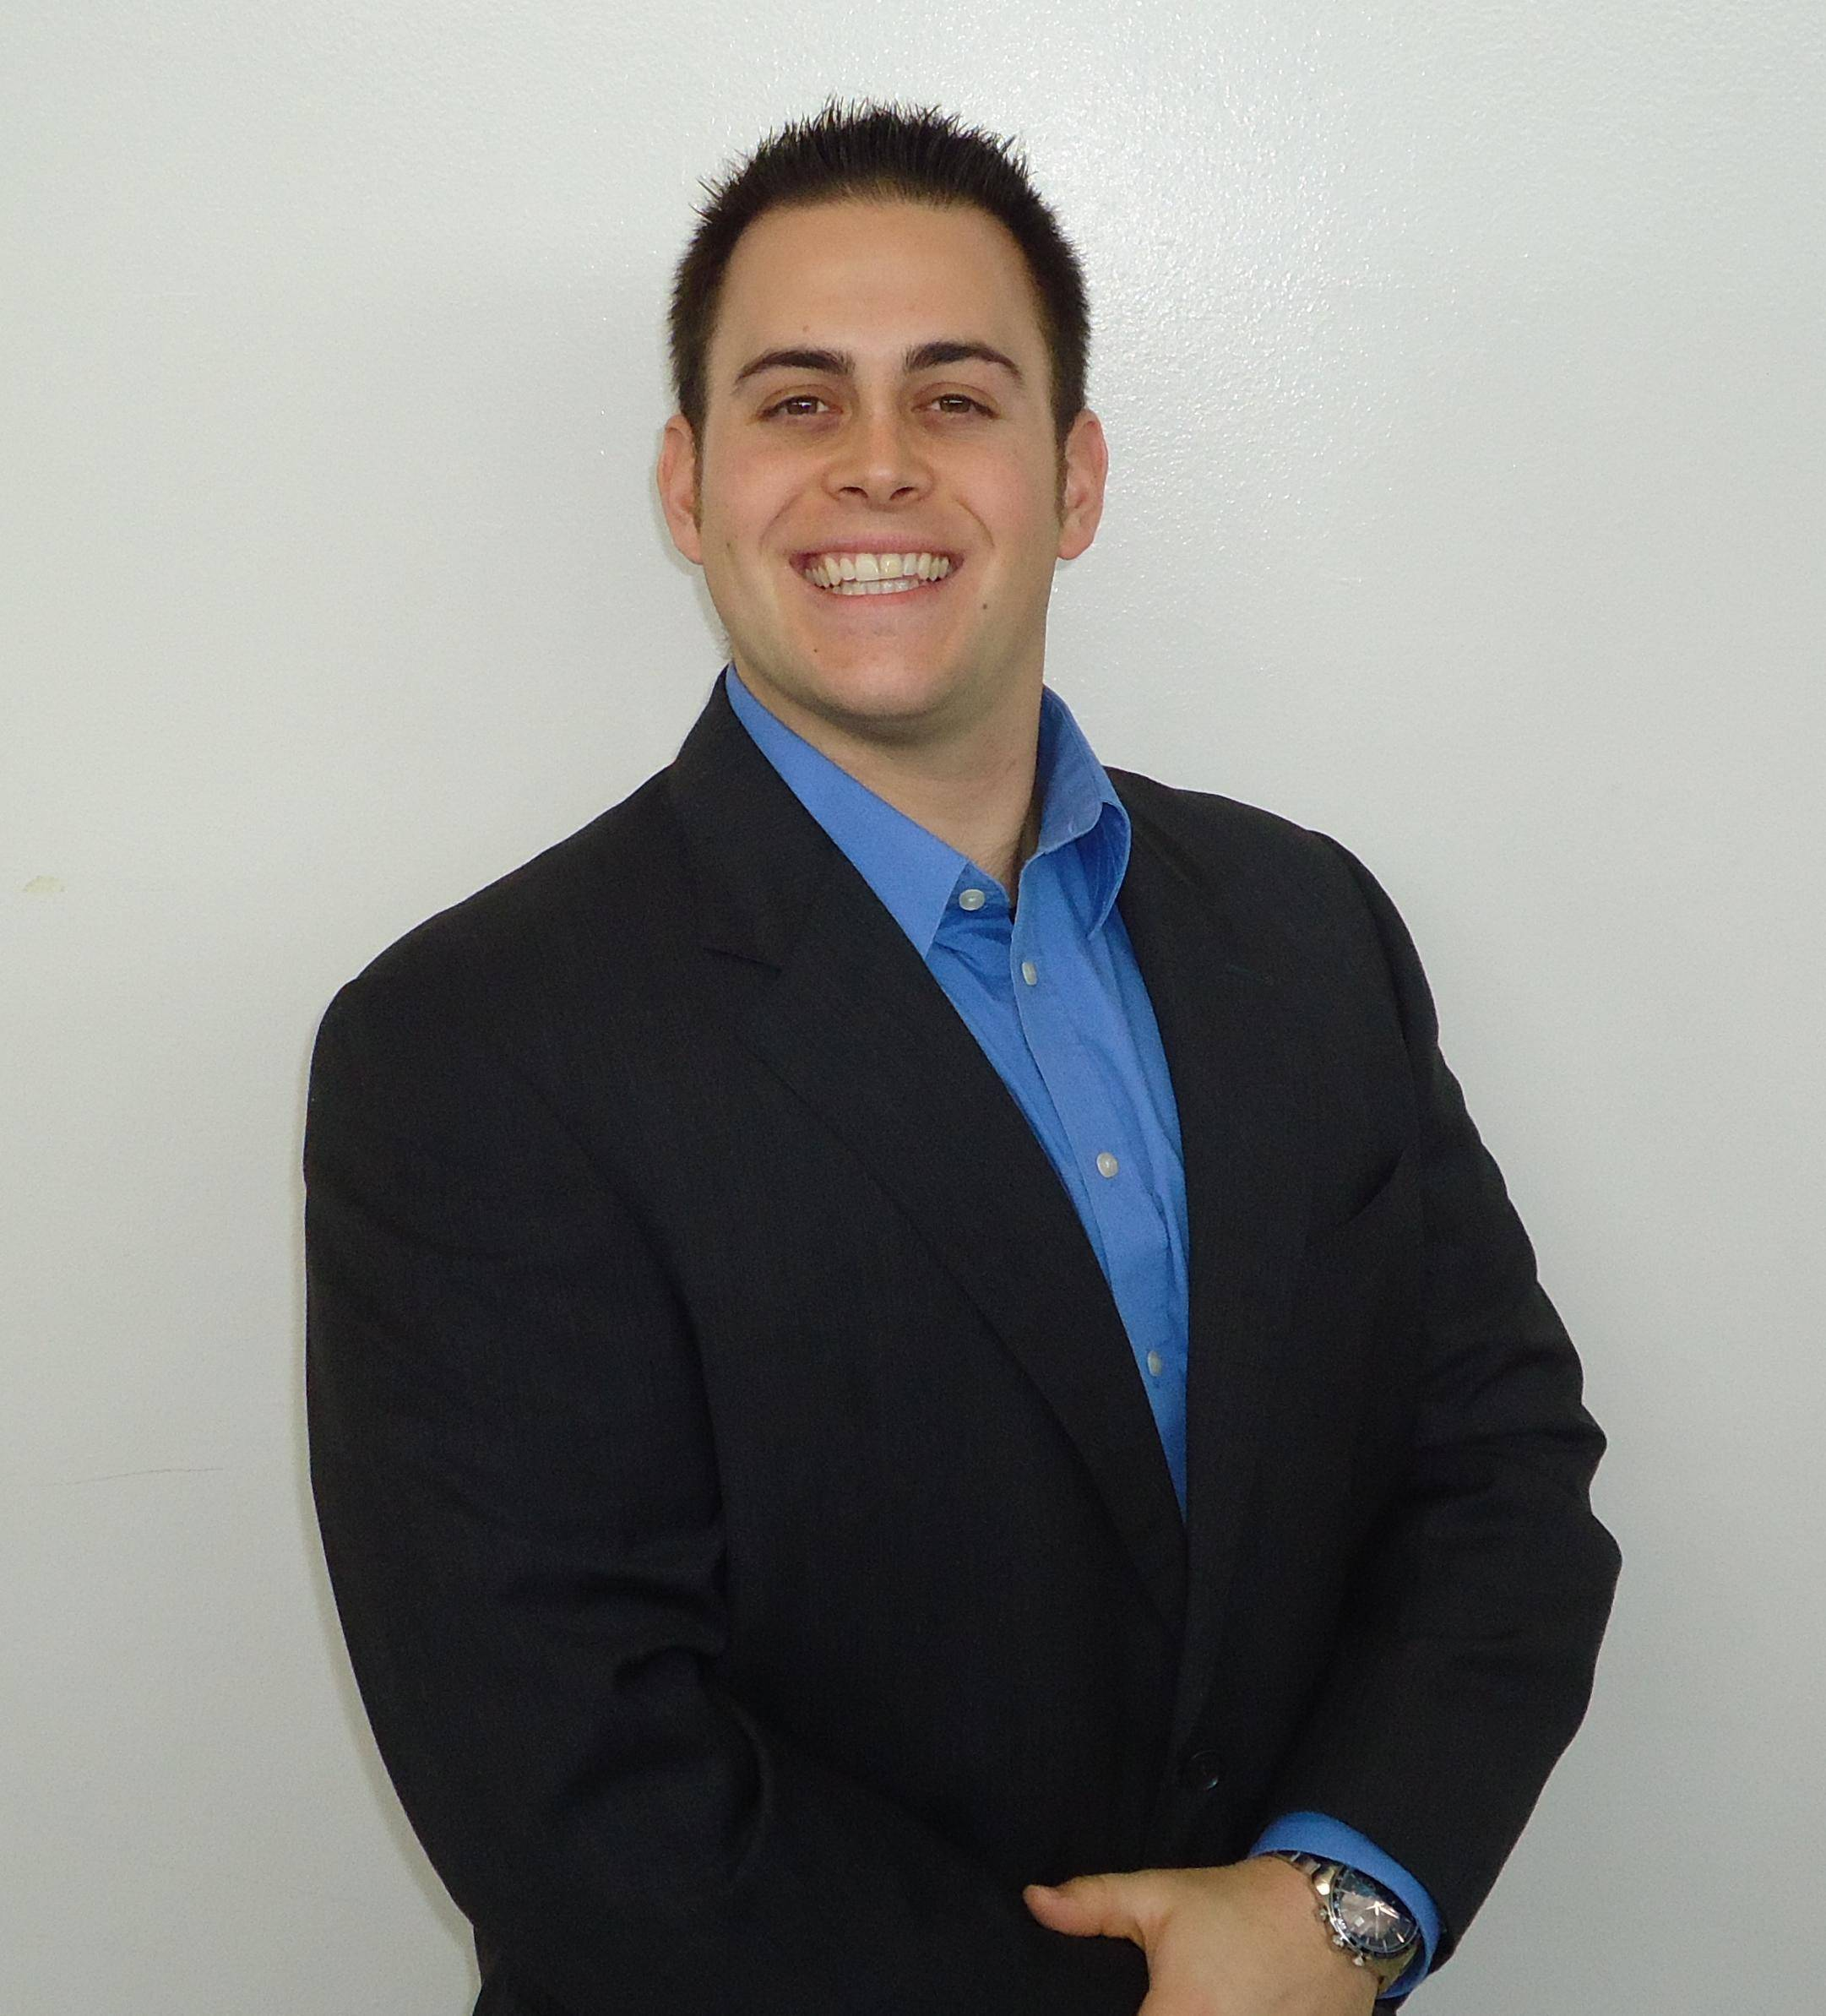 Jeffrey DiOrio, running for Geneva Unit District 304 School Board (4-year Terms)